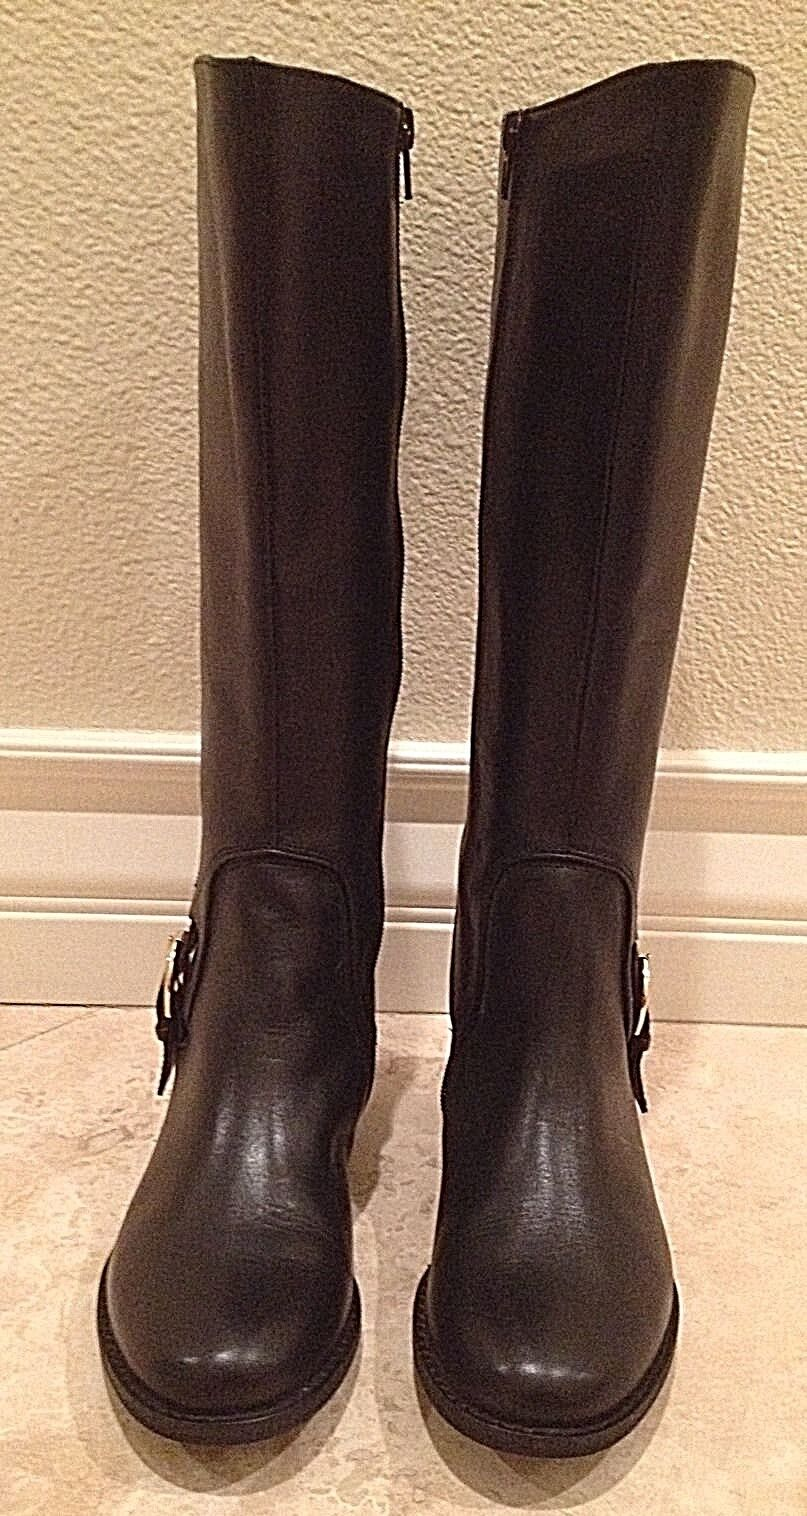 ME TOO Black Leather Equestrian English Riding Boots Buckle Zip Boots 5.5M NEW!!